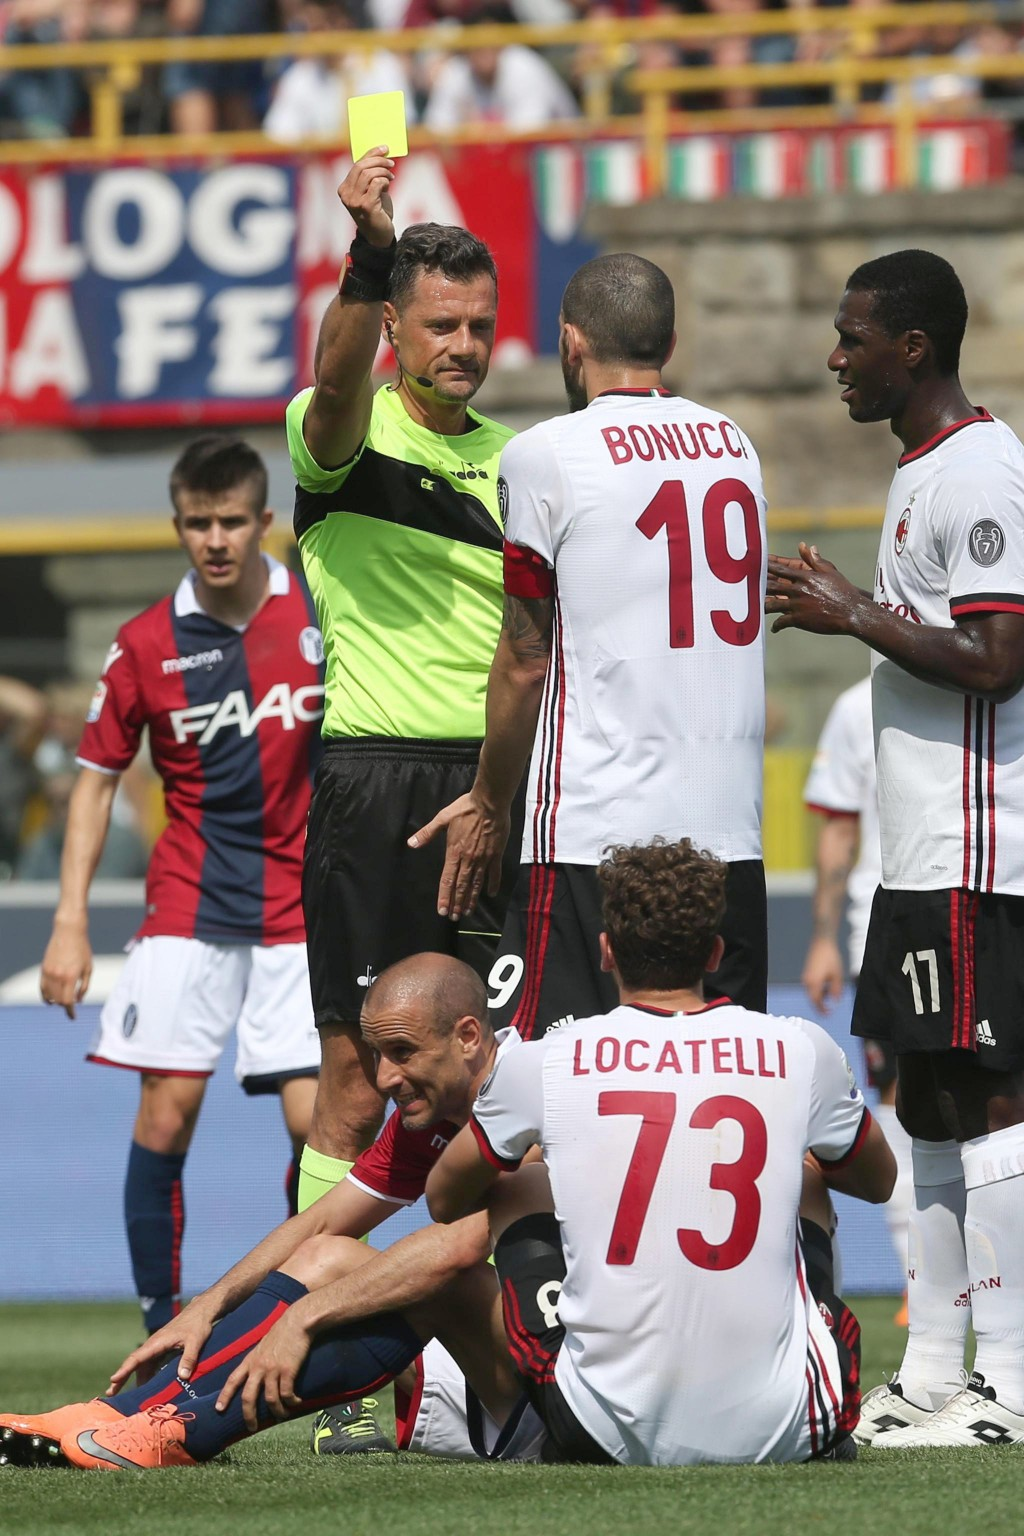 Referee Piero Giacomelli shows a yellow card to AC Milan's Manuel Locatelli, on the ground, as AC Milan's Leonardo Bonucci argues with him during a se...